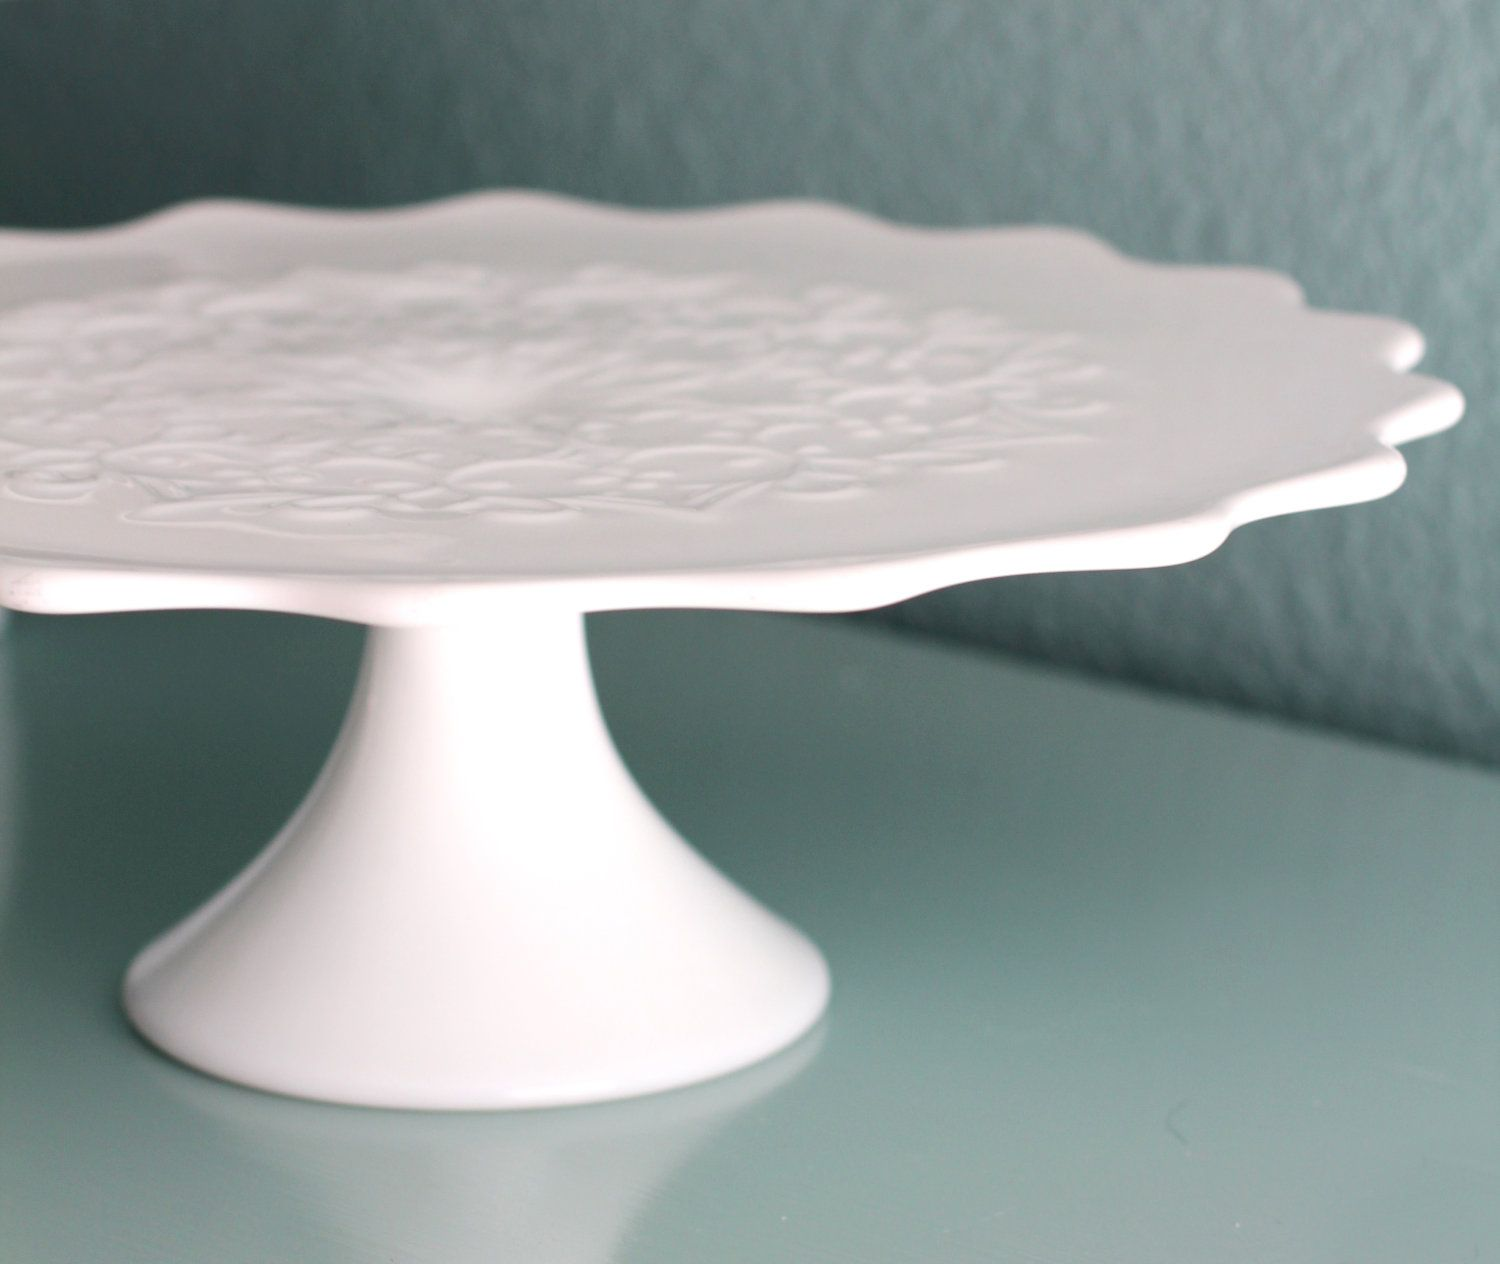 Milk Glass Cake Stand / Vintage Cake Stand Pedestal for Vintage Weddings / Scroll Embossed Scallop Cake Plate / White Cakestand & Milk Glass Cake Stand / Vintage Cake Stand by RocheStudioVintage ...